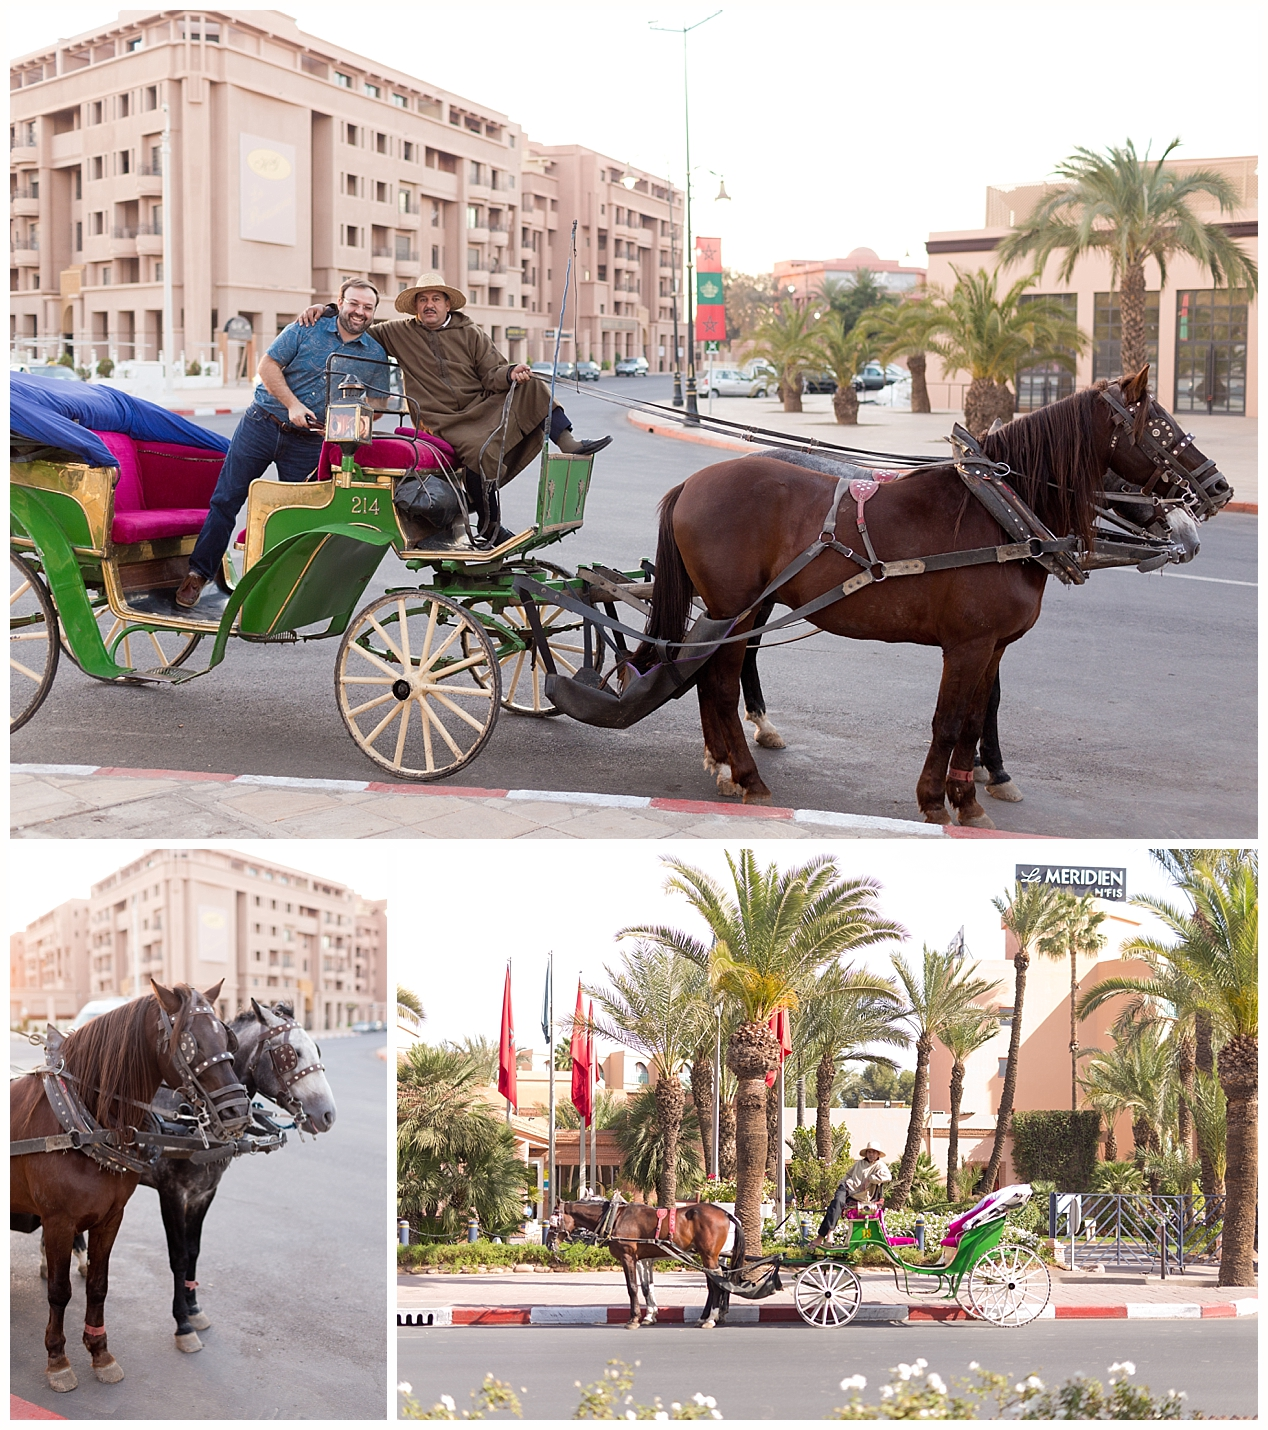 horse and buggy rides in Marrakech, Morocco